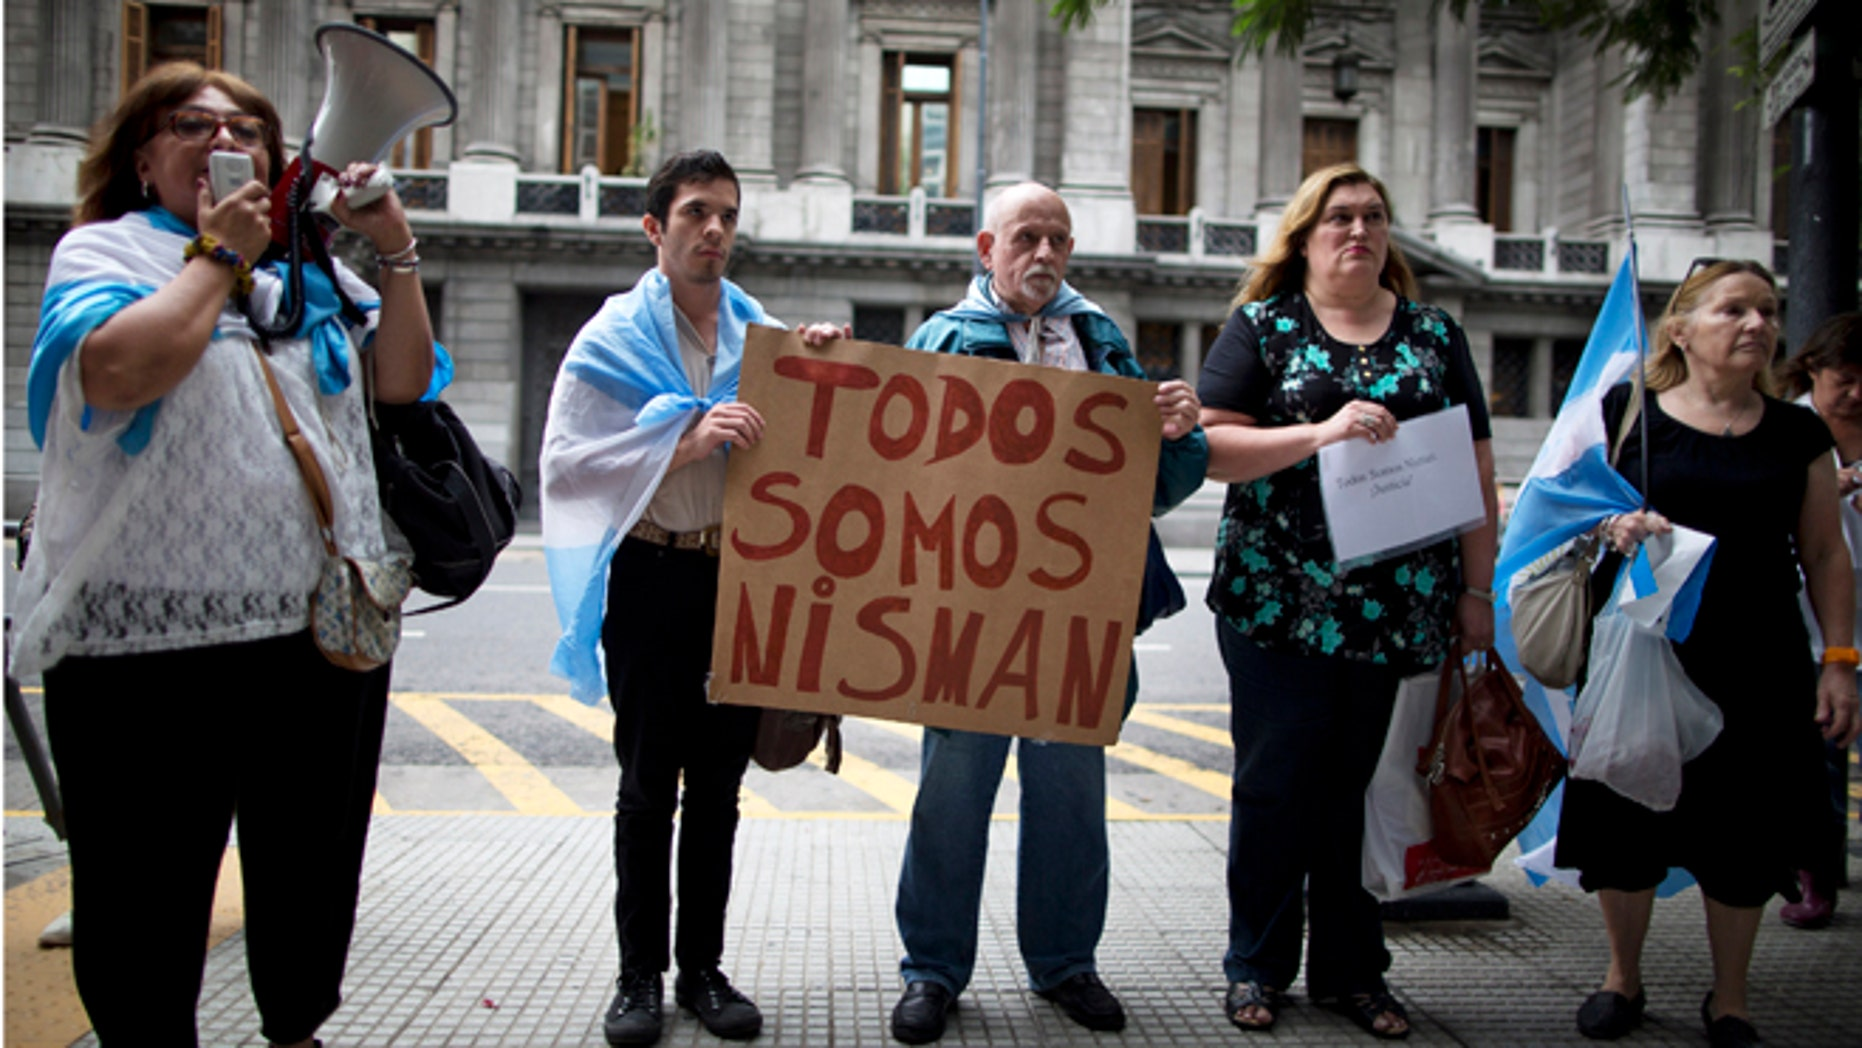 """People holding a sign that reads in Spanish """"We are all Nisman,"""" protest the death of special prosecutor Alberto Nisman, outside Congress in Buenos Aires, Argentina, Monday, Jan. 19, 2015. Nisman who accused the government of secret deals with Iran over an investigation into a 1994 Argentine-Israeli Mutual Association community center terrorist attack, was found dead with a gunshot wound, at his apartment early Monday. Nisman was due to participate in a closed-door session with Congress Monday over his claim last week that Argentine President Cristina Fernandez and Foreign Minister Hector Timerman covered up a deal with Iran. (AP Photo/Rodrigo Abd)"""